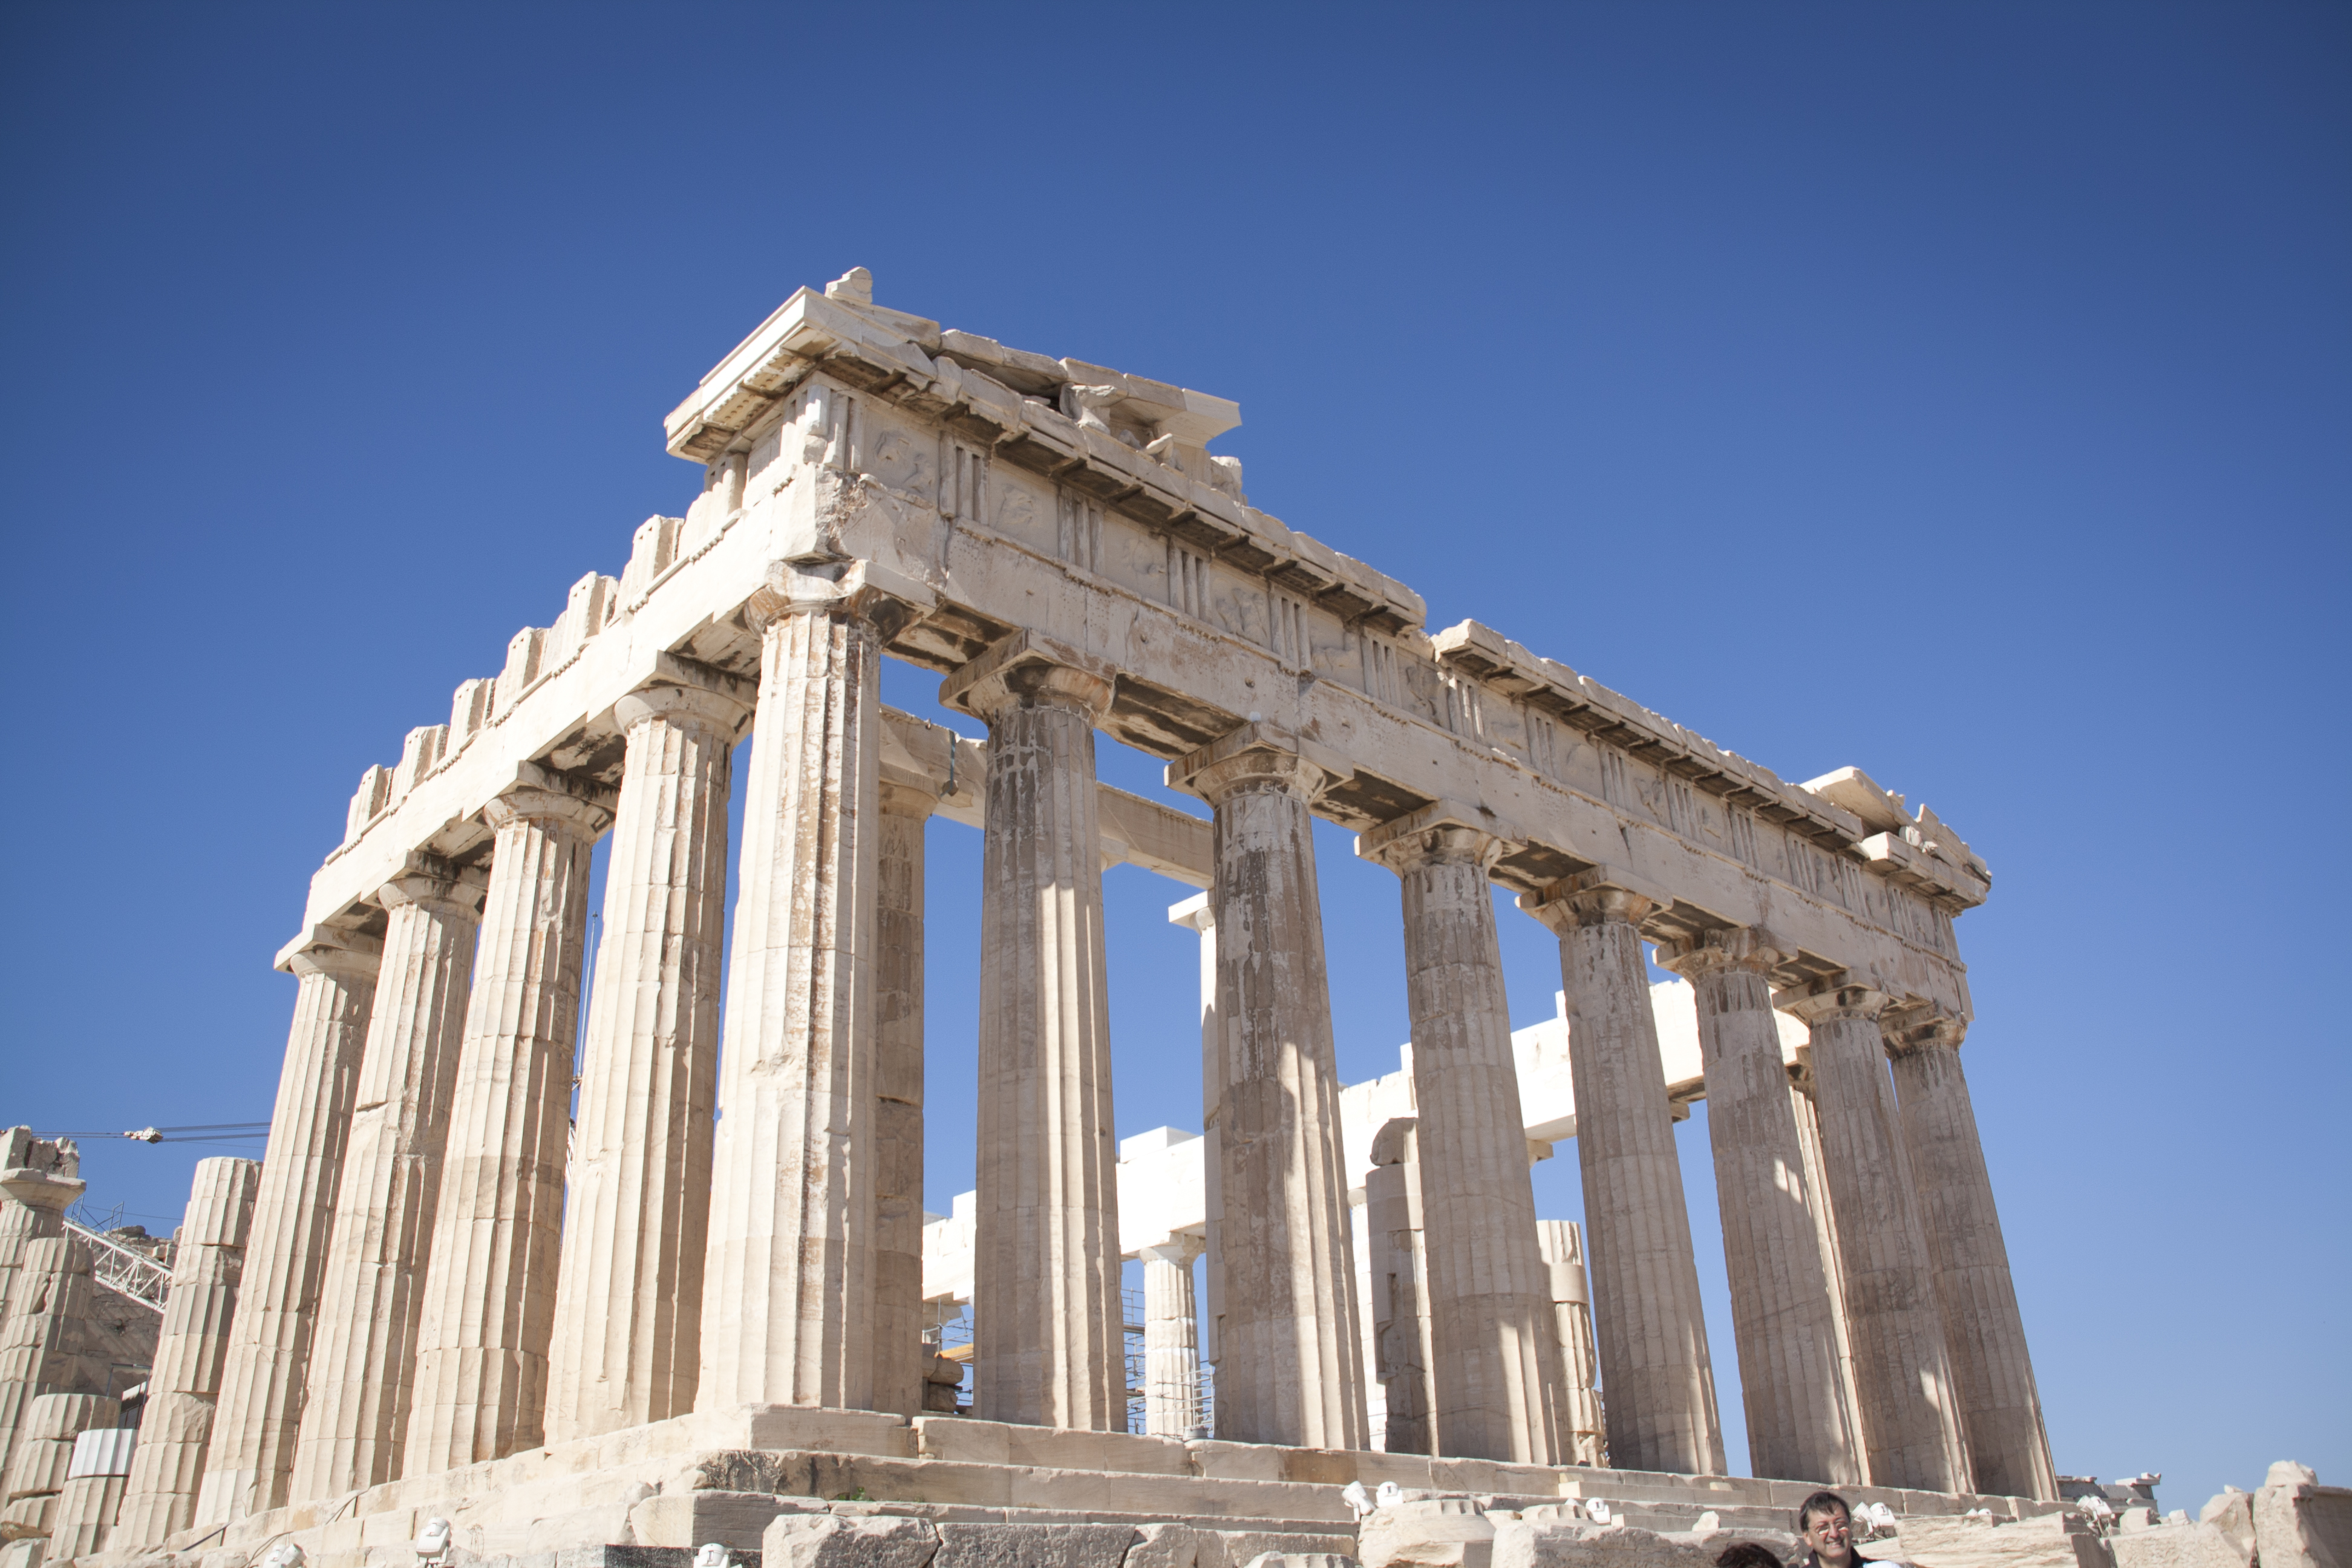 I Thought the Parthenon Was Old? Why Are They Still ...